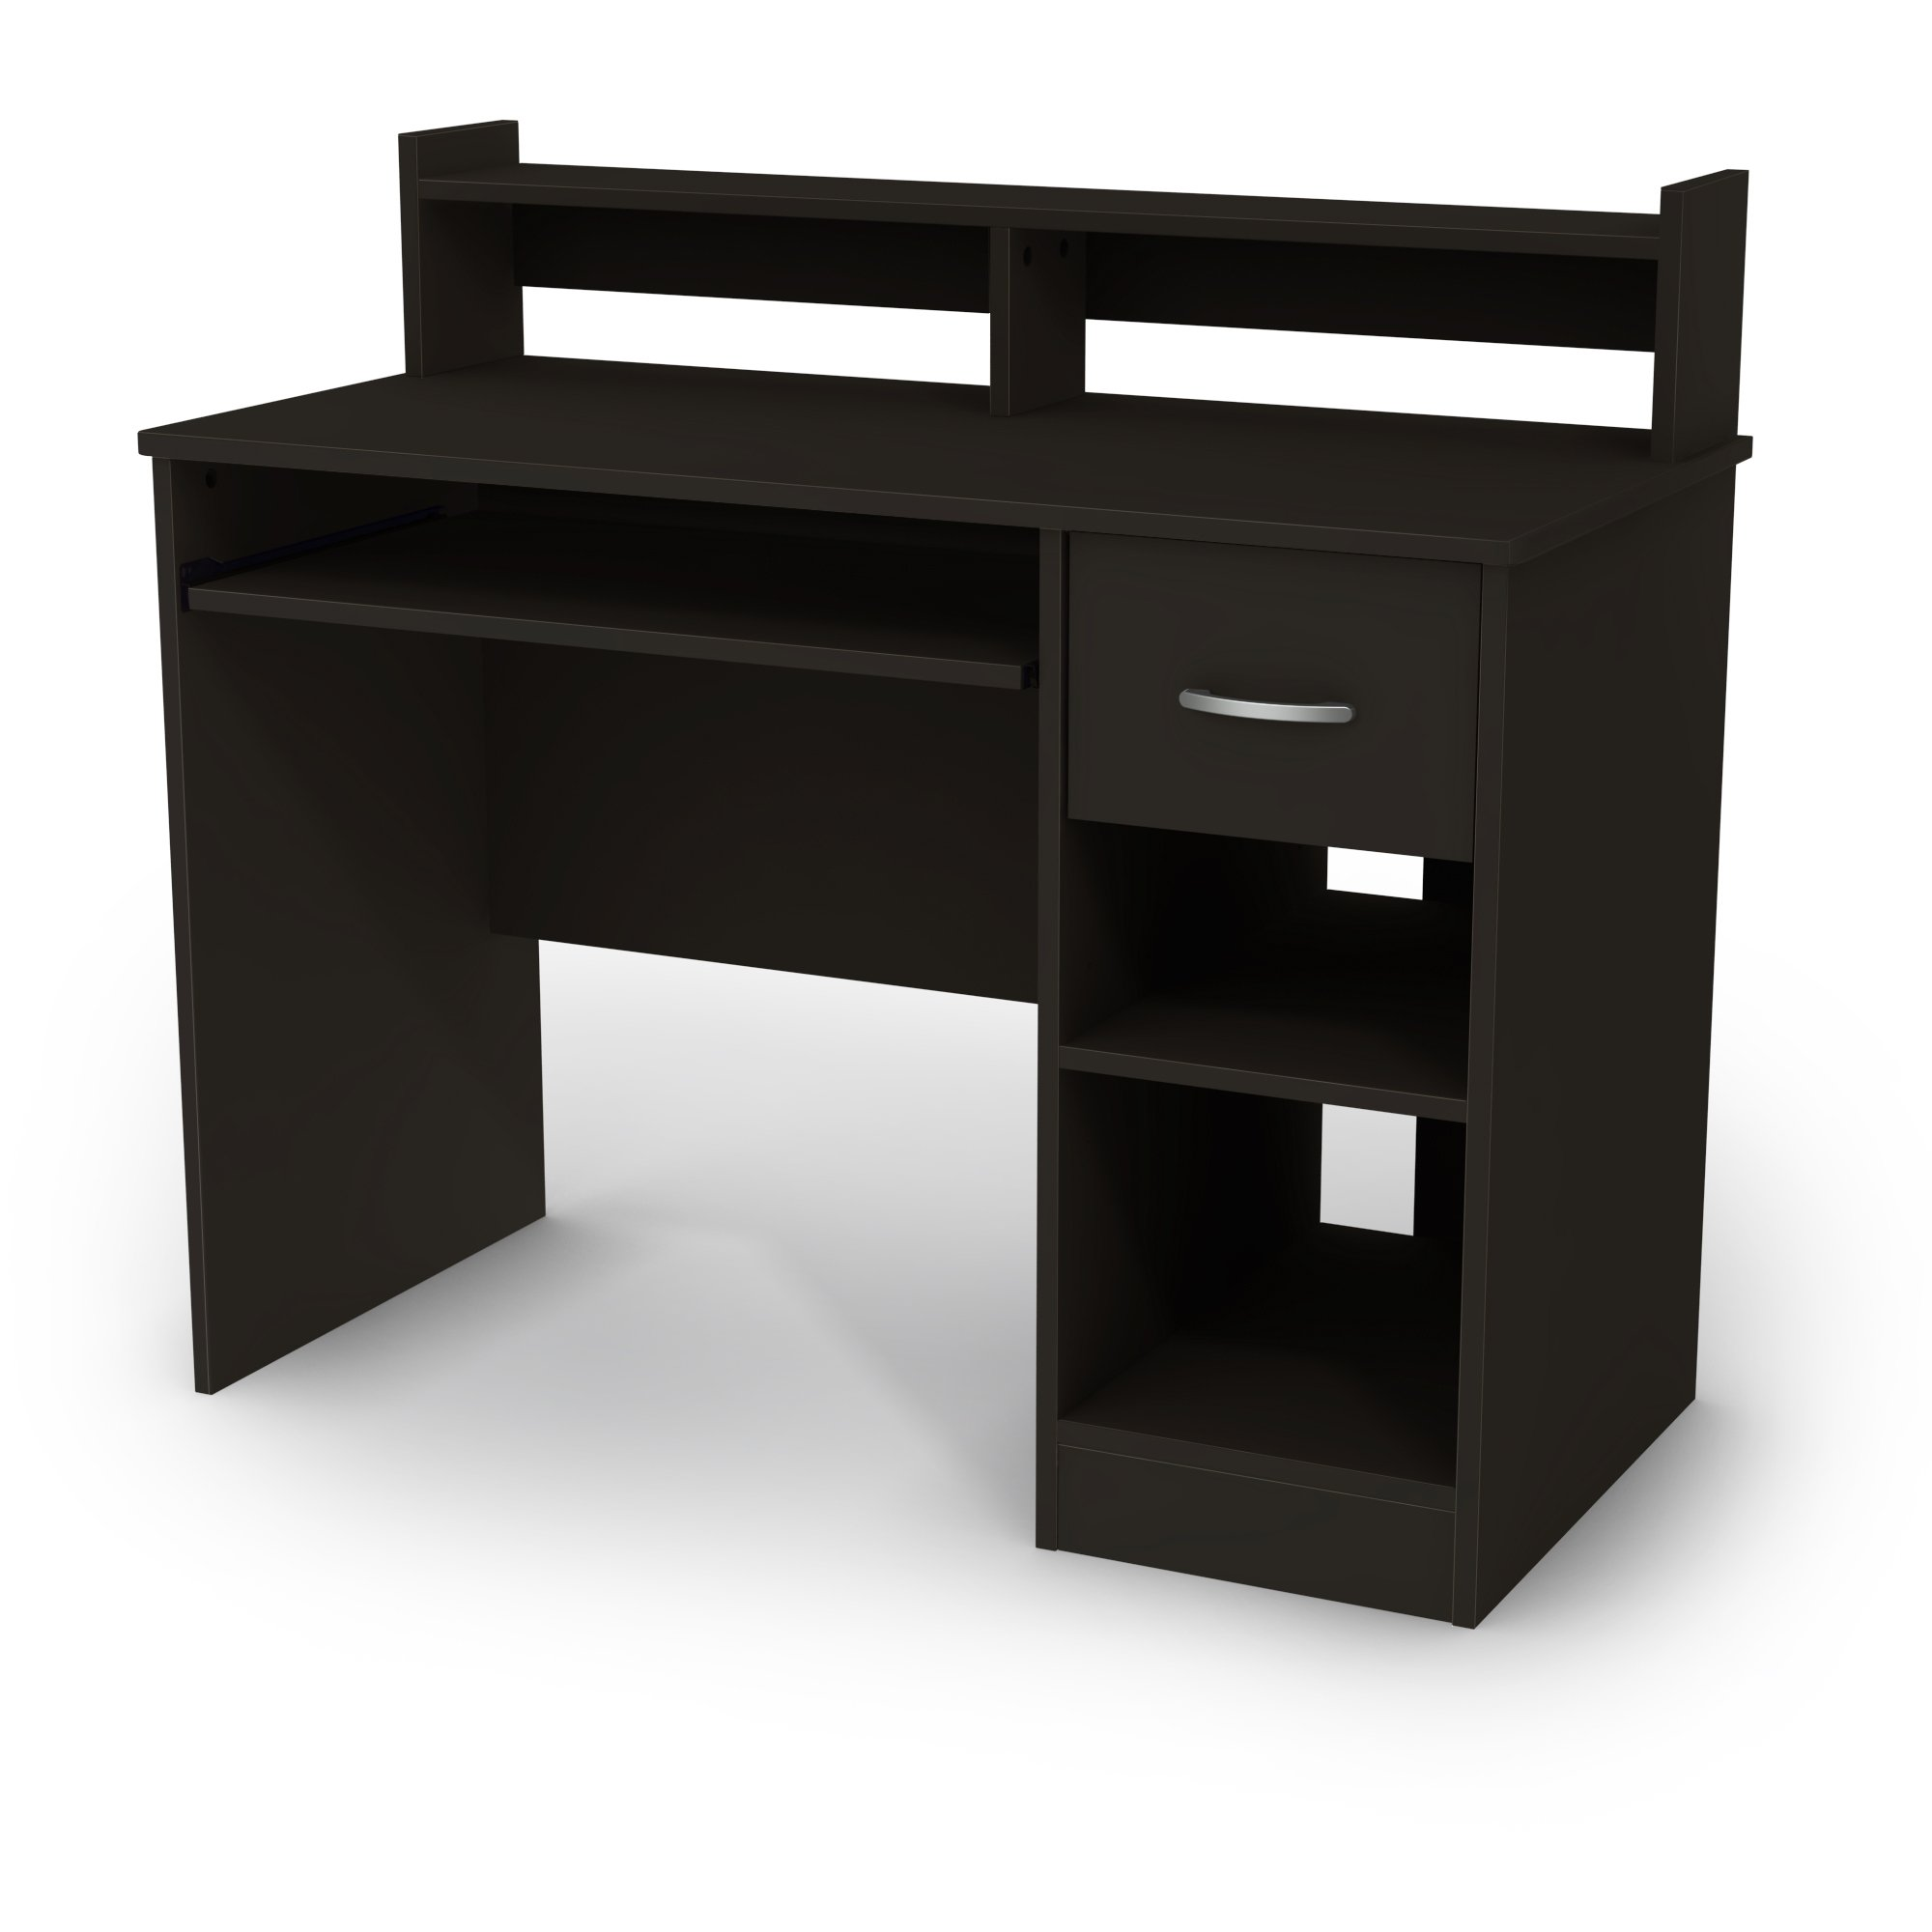 South Shore Axess Desk with Keyboard Tray, Black by South Shore